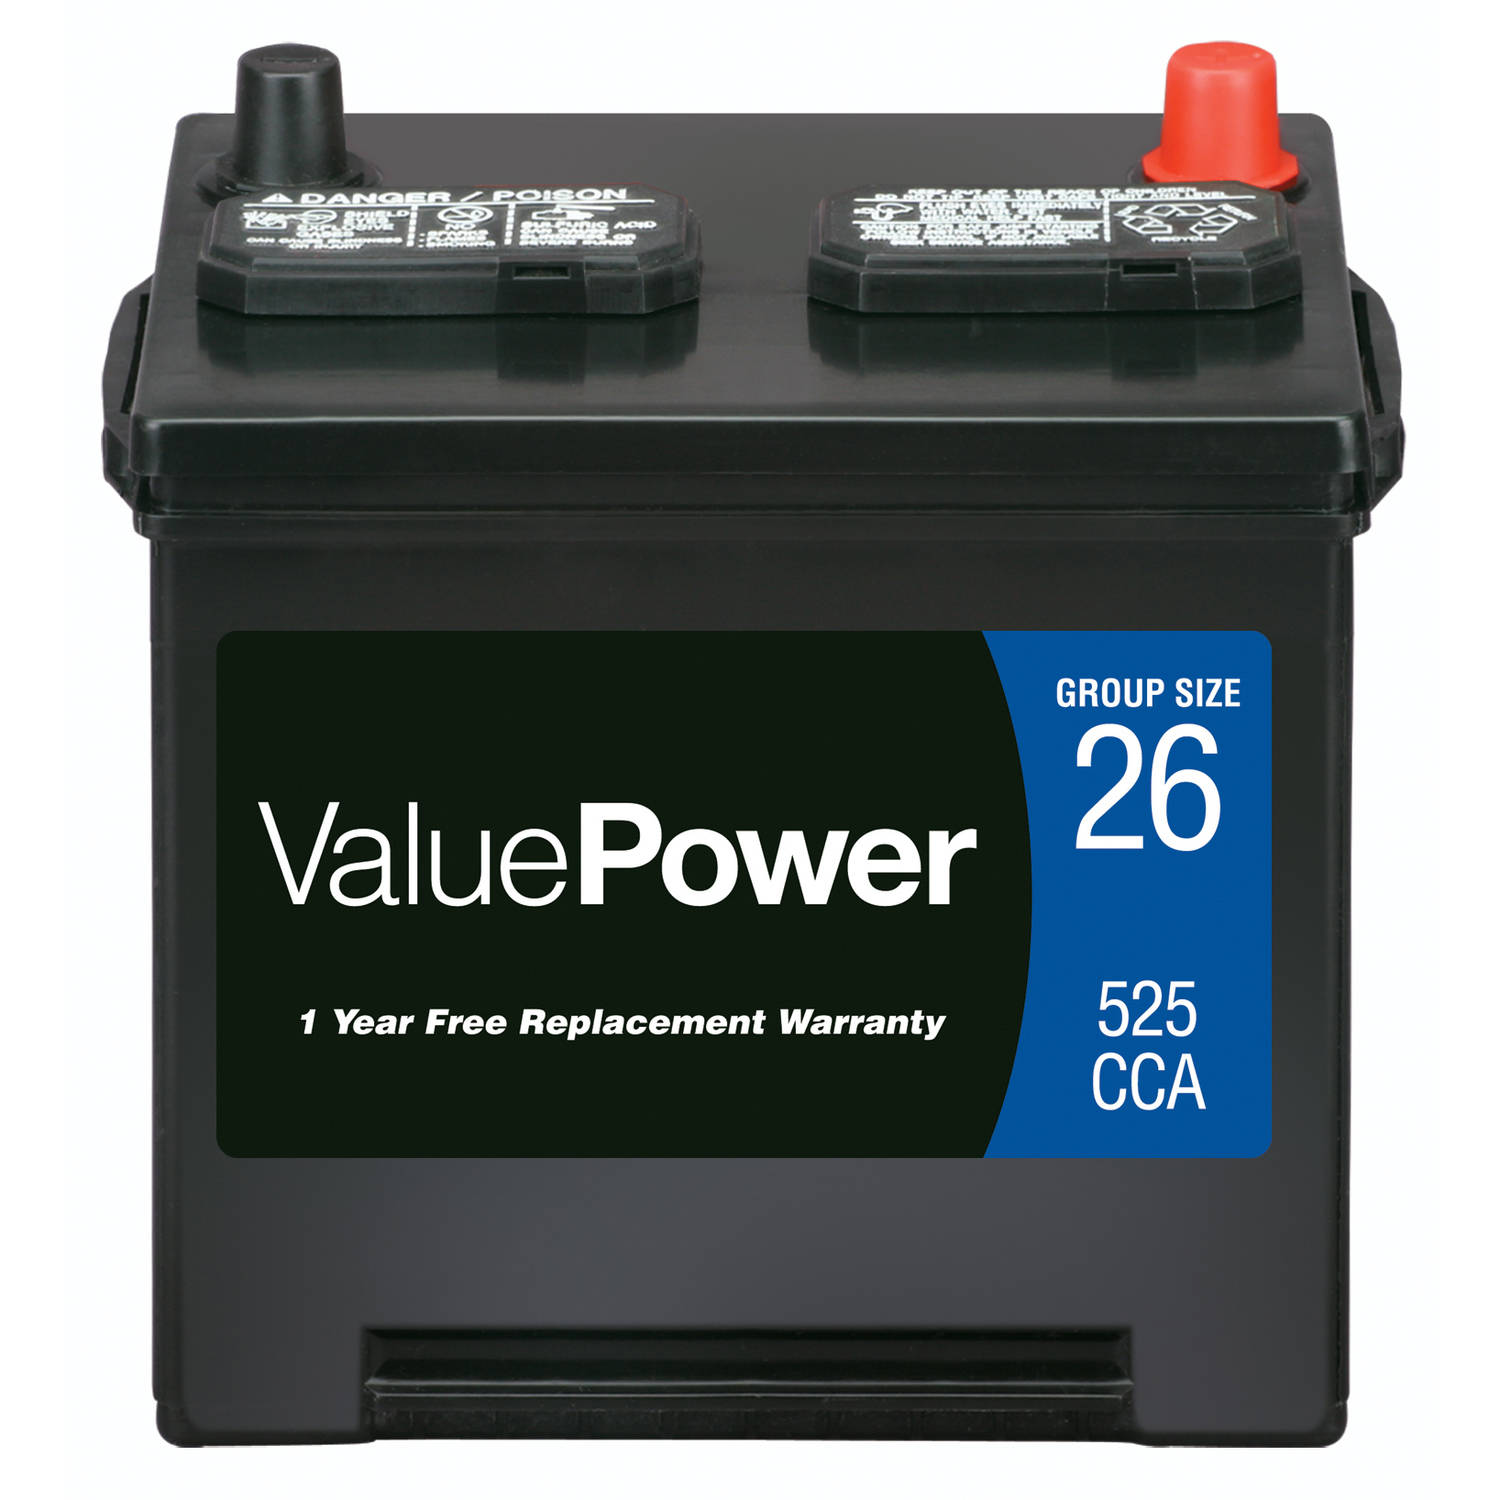 Walmart's quality marine batteries are supplied by Johnson Controls, the world's largest lead-acid battery manufacturer. • What is a core fee? Depending on the state you live in, if you do not bring in your old lead-acid battery to exchange when purchasing a new battery, you will be charged a core fee.